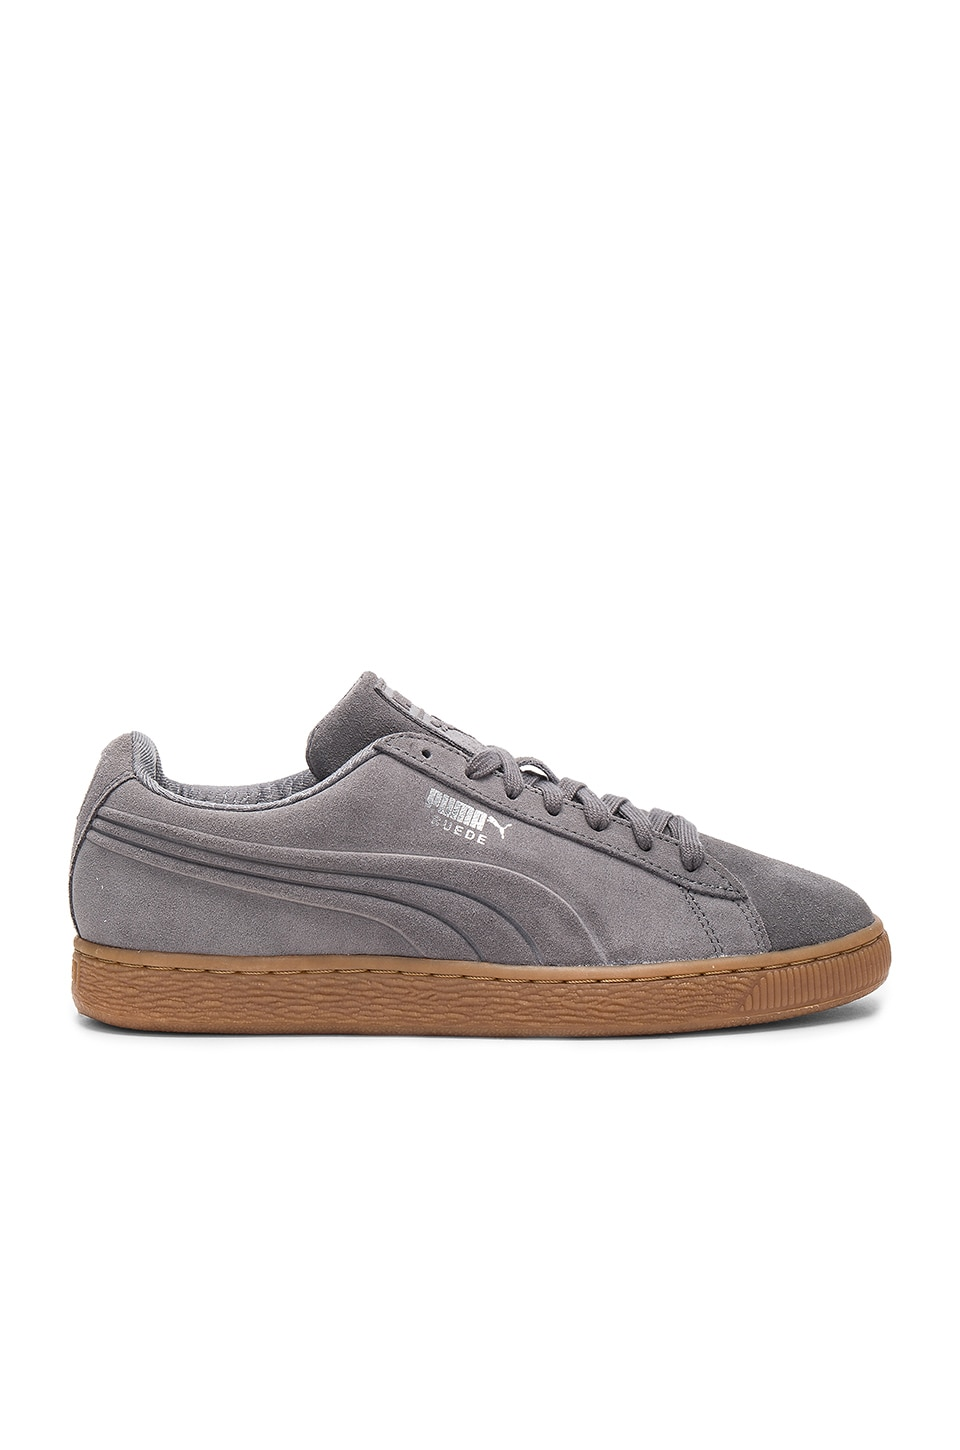 Suede Debossed by Puma Select